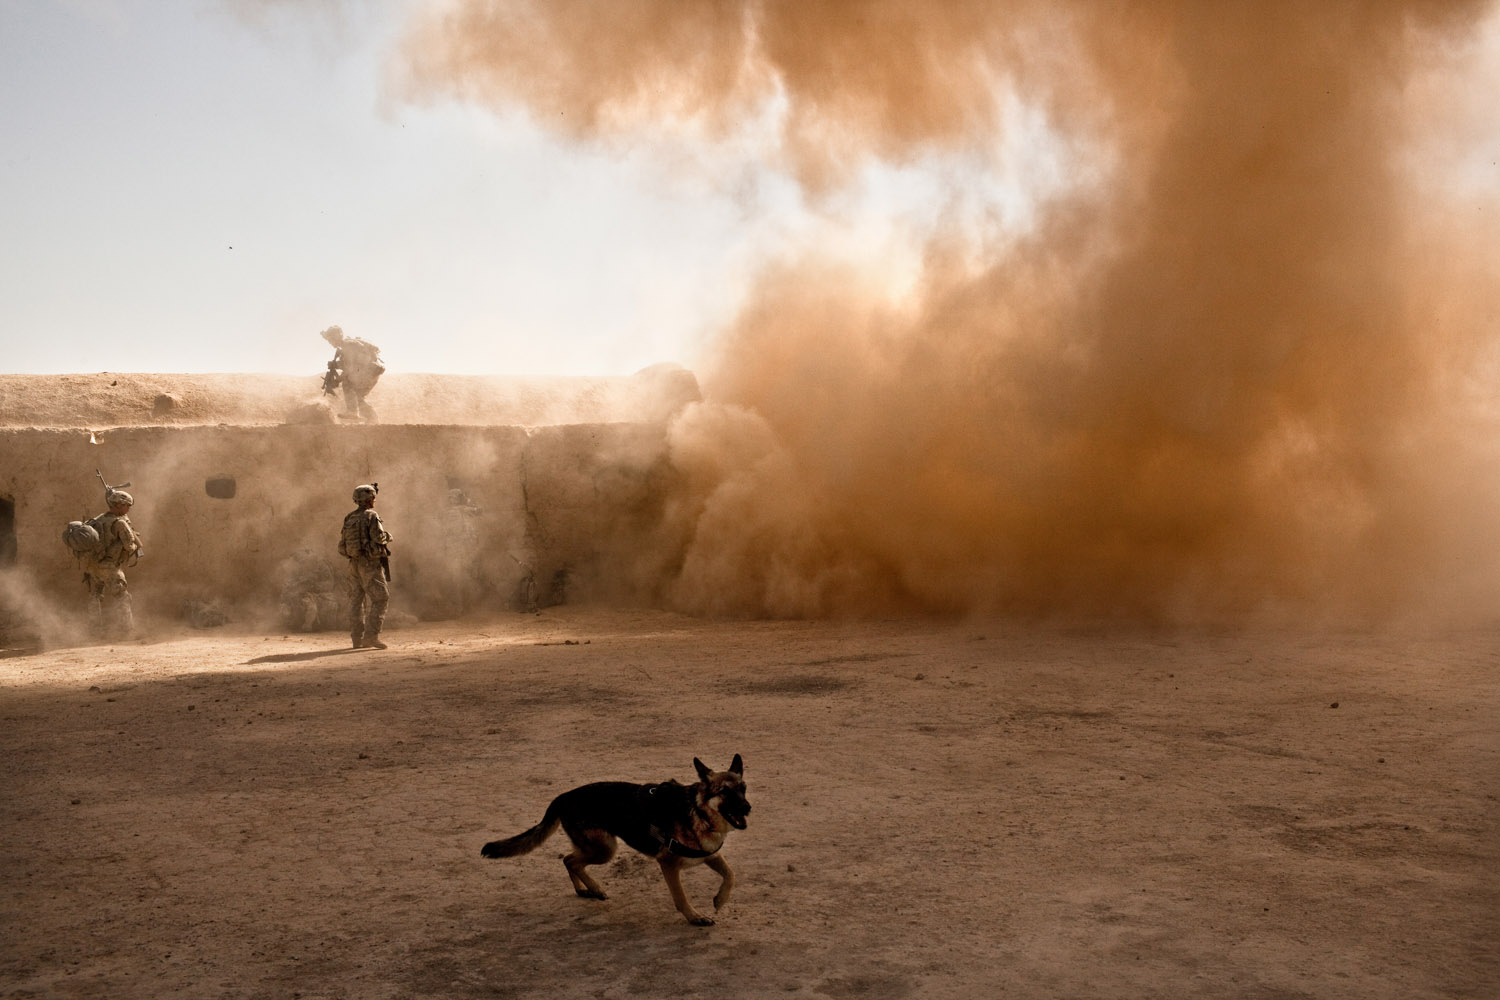 An IED detonates and injures soldiers during  Operation Clarksville  in Kandahar Province, Afghanistan. Oct. 9, 2010.